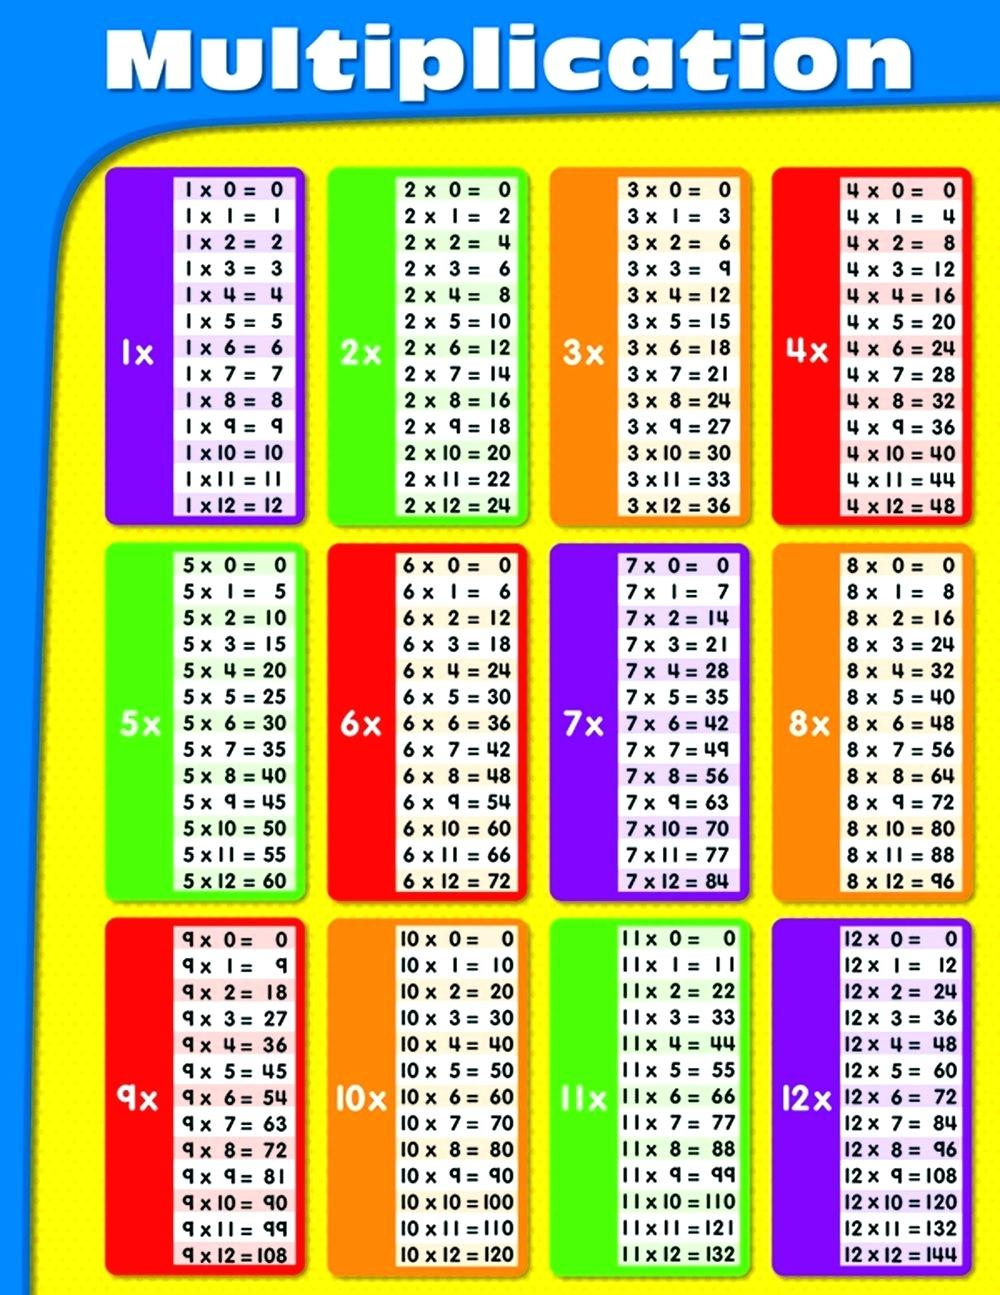 Satisfactory Times Tables Charts Printable | Marvin Blog